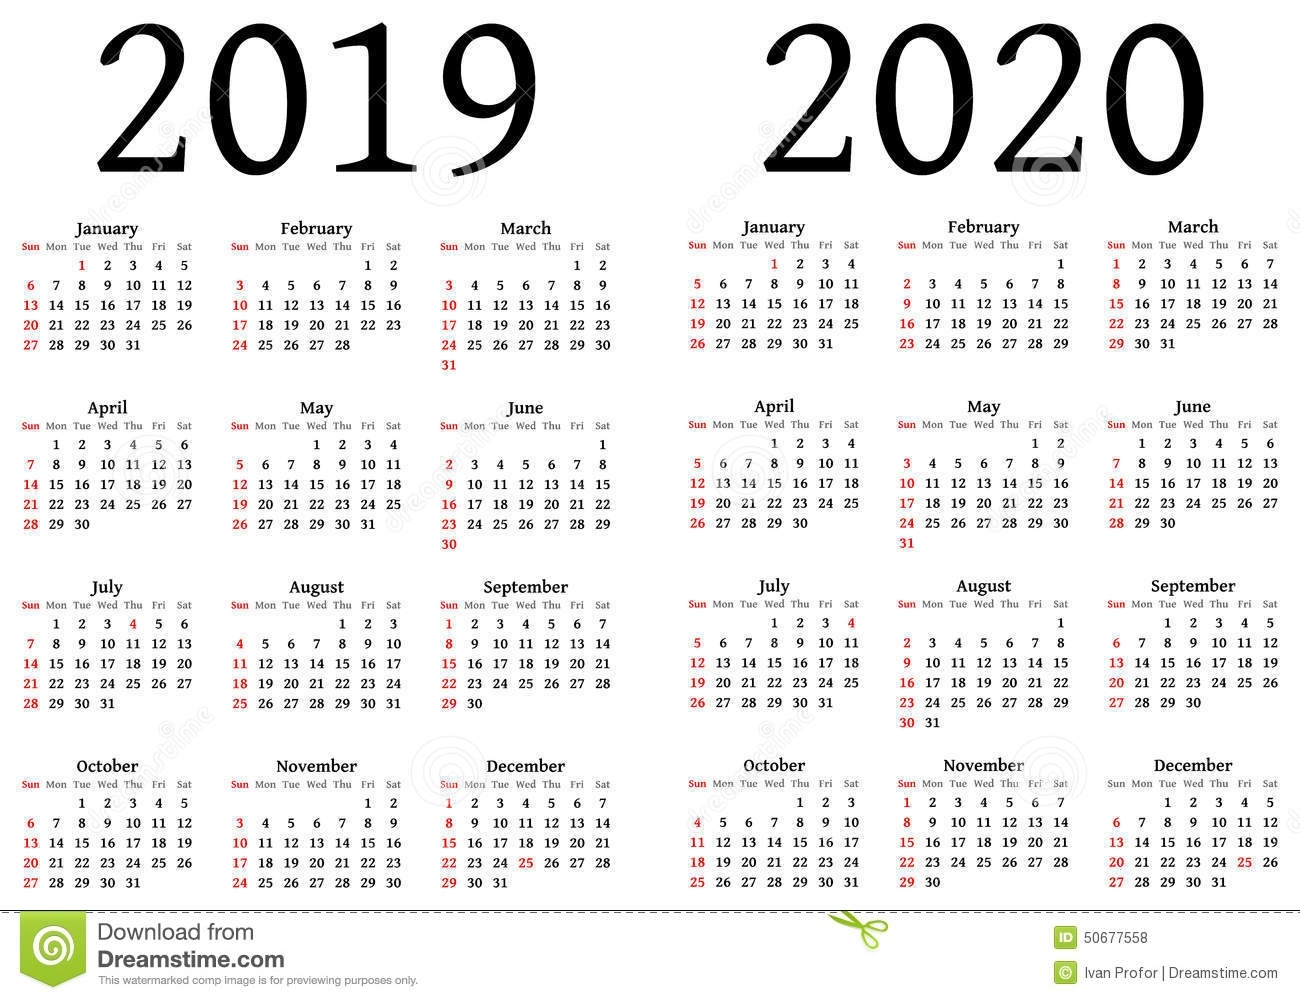 Calendar For 2019 And 2020 Stock Vector. Illustration Of Designers pertaining to Free Printable Calendar 2019-2020